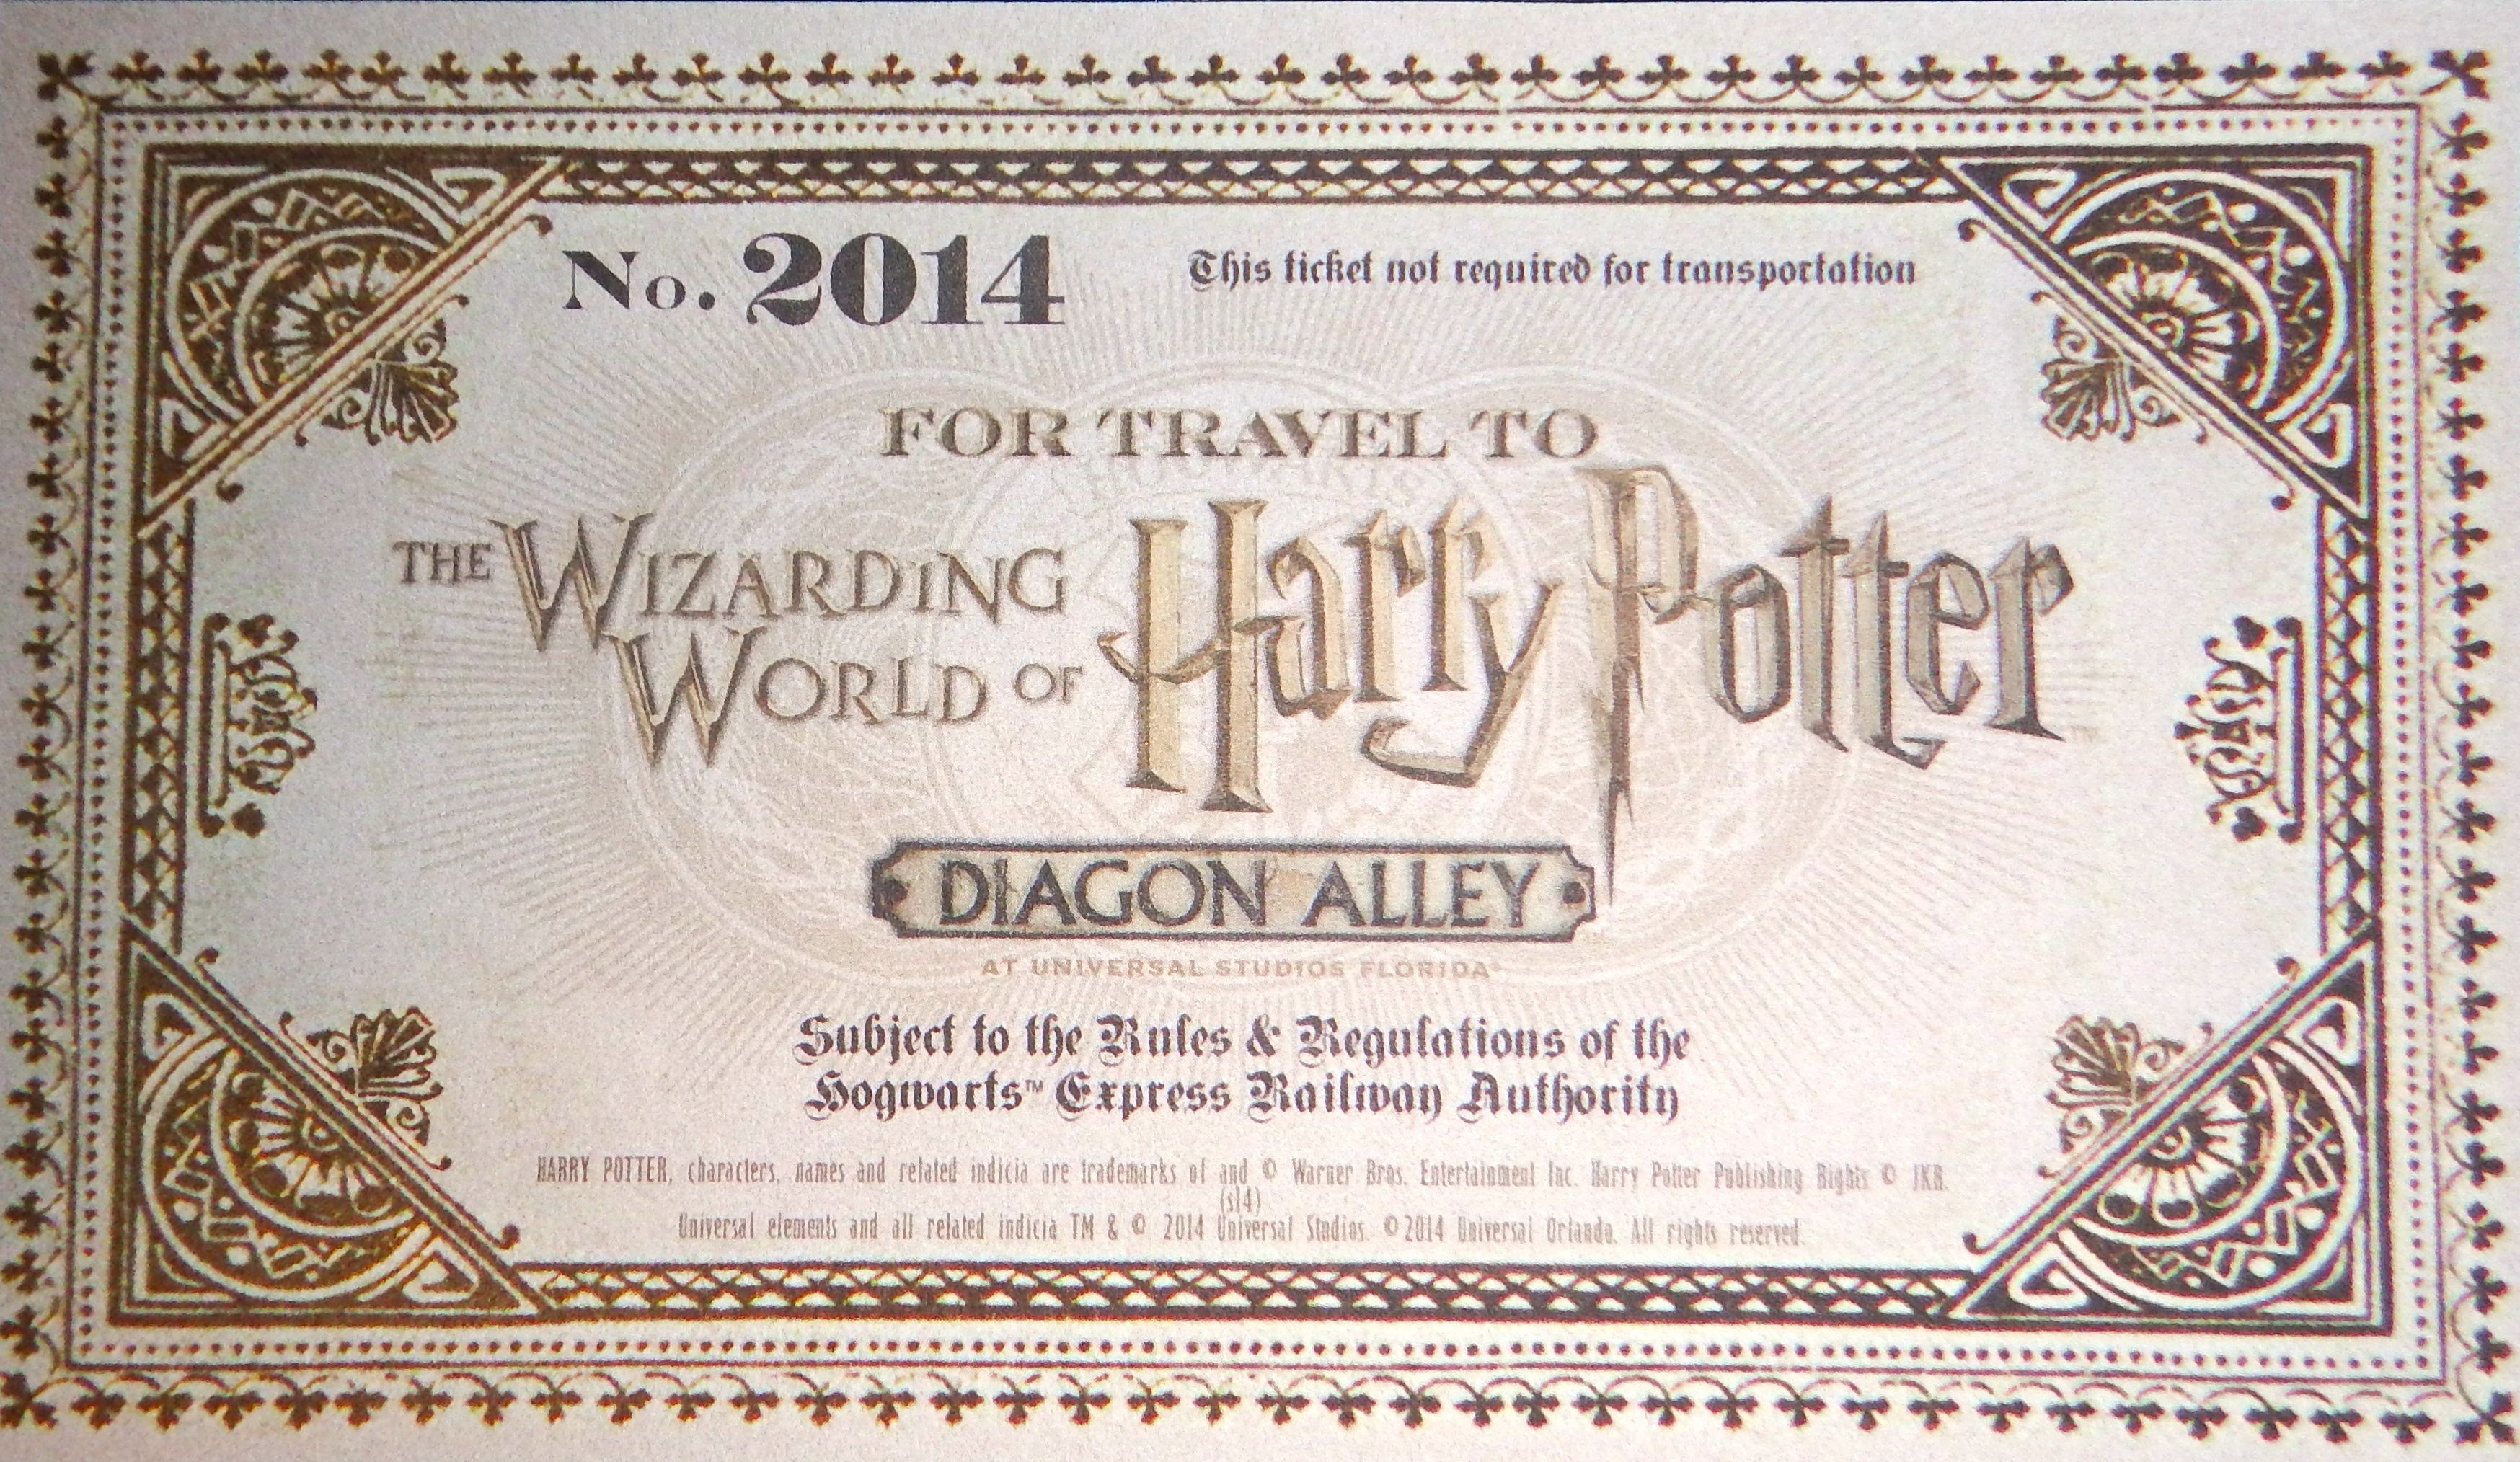 Diagon Alley Invite Unboxing For Wizarding World Of Harry Potter Preview At Universal Orlando Reso Hogwarts Express Ticket Harry Potter Ticket Hogwarts Express